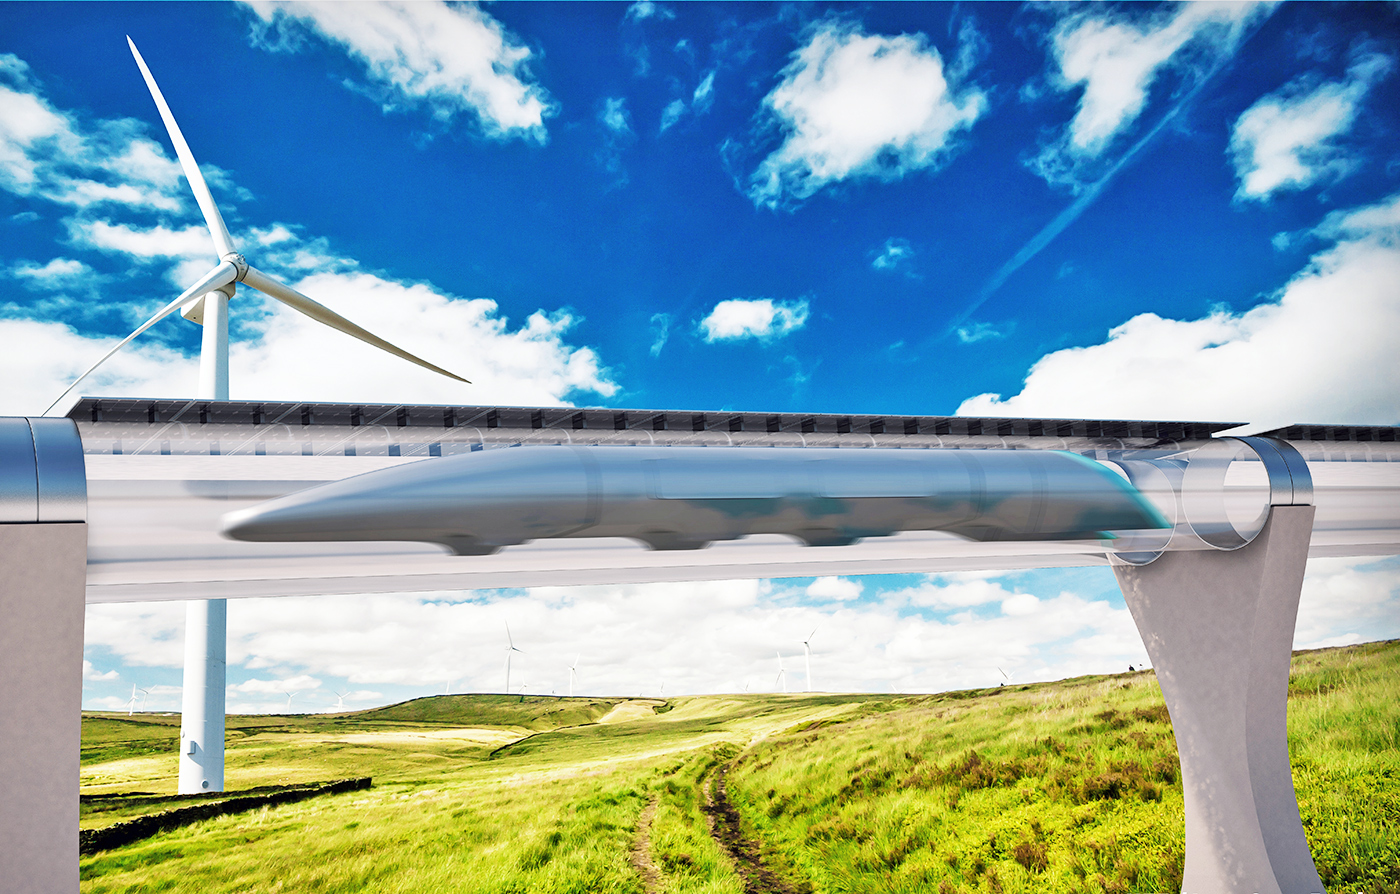 Six futuristic designs that will change public transportation